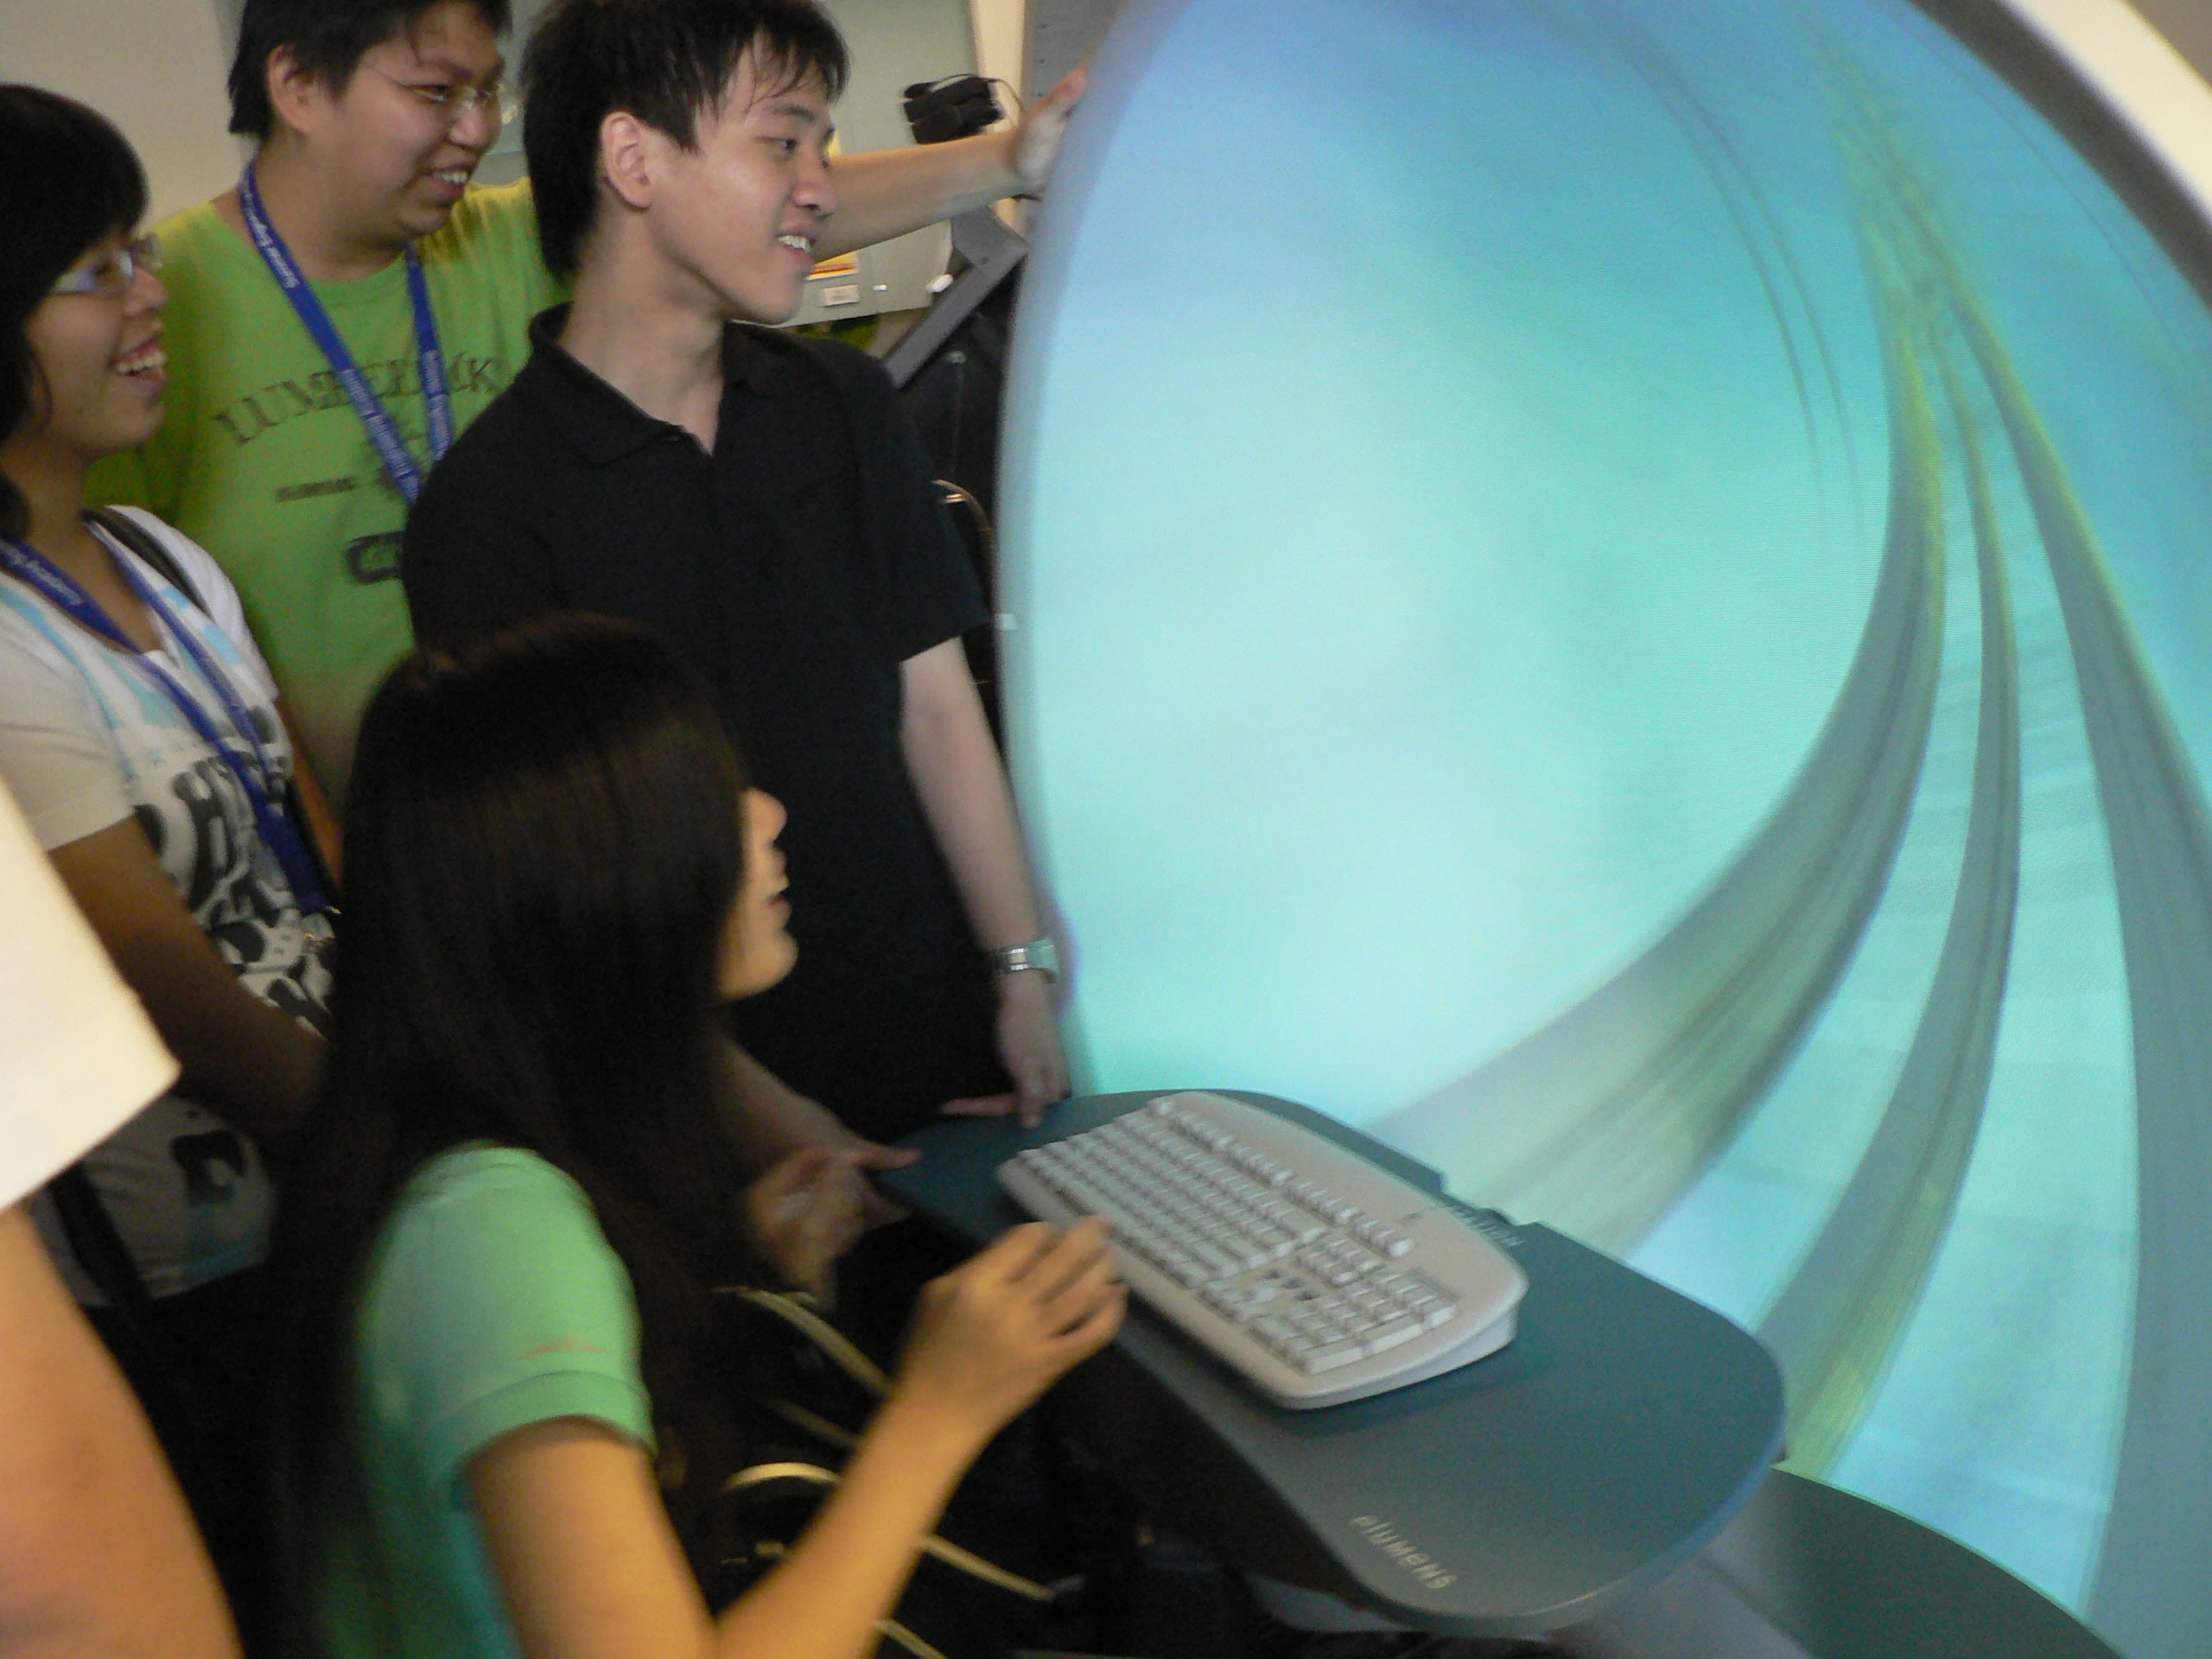 Students experience a virtual roller coaster game using tele-immersion technology at the Virtual Reality Visualization and Imaging Research Centre of CUHK